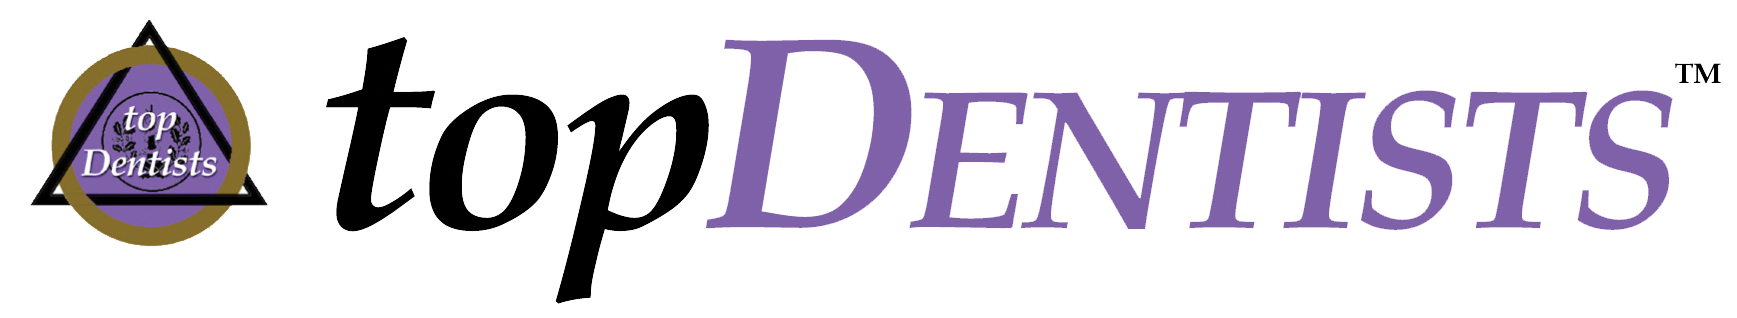 topDentist_logo.png